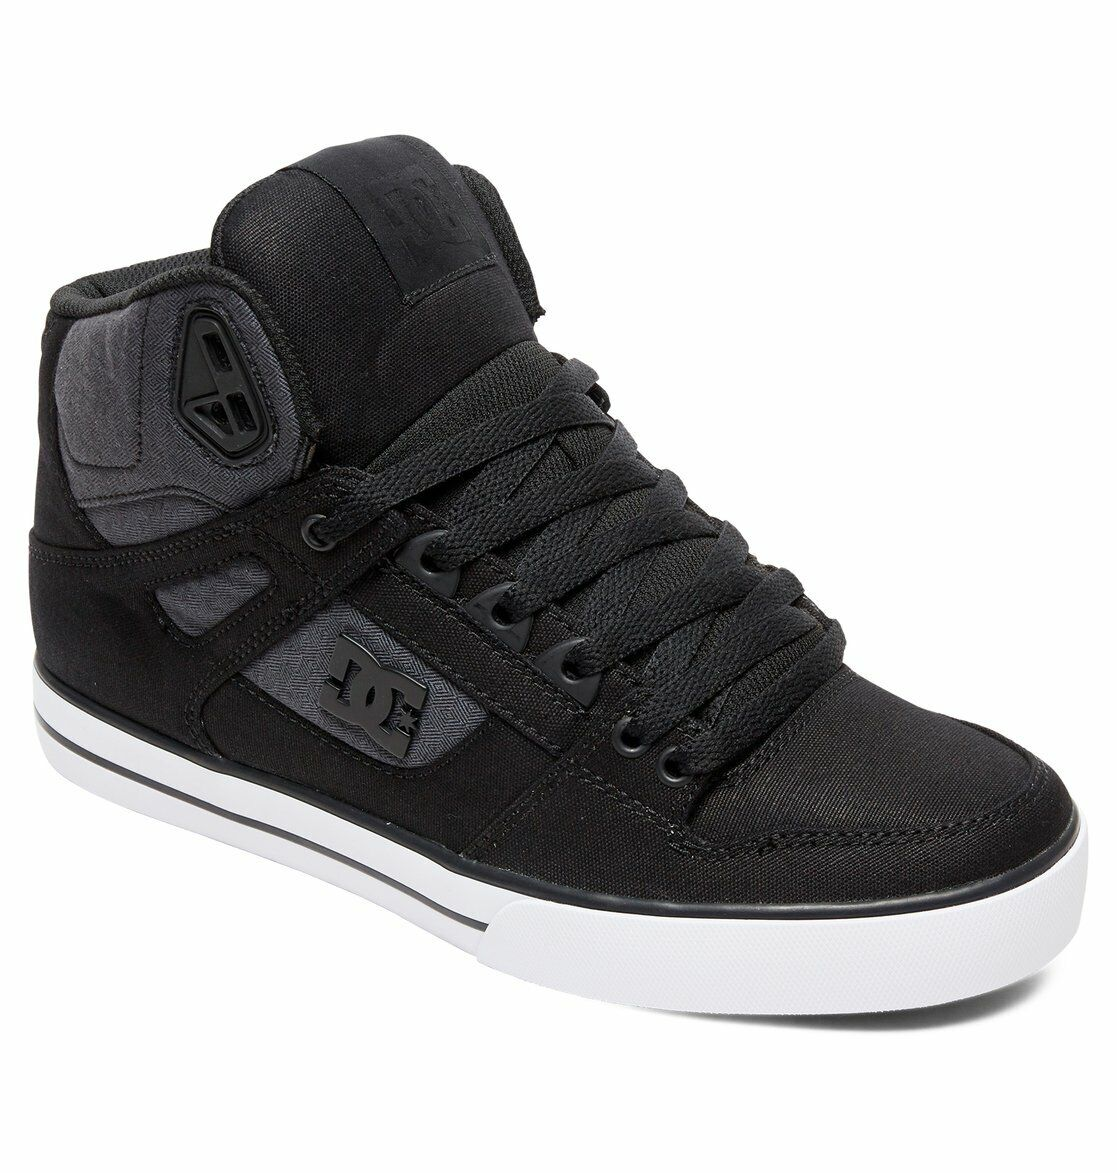 DC schuhe Men PURE HIGH TOP WC TX SE- schwarz dark used - KLASSIKER